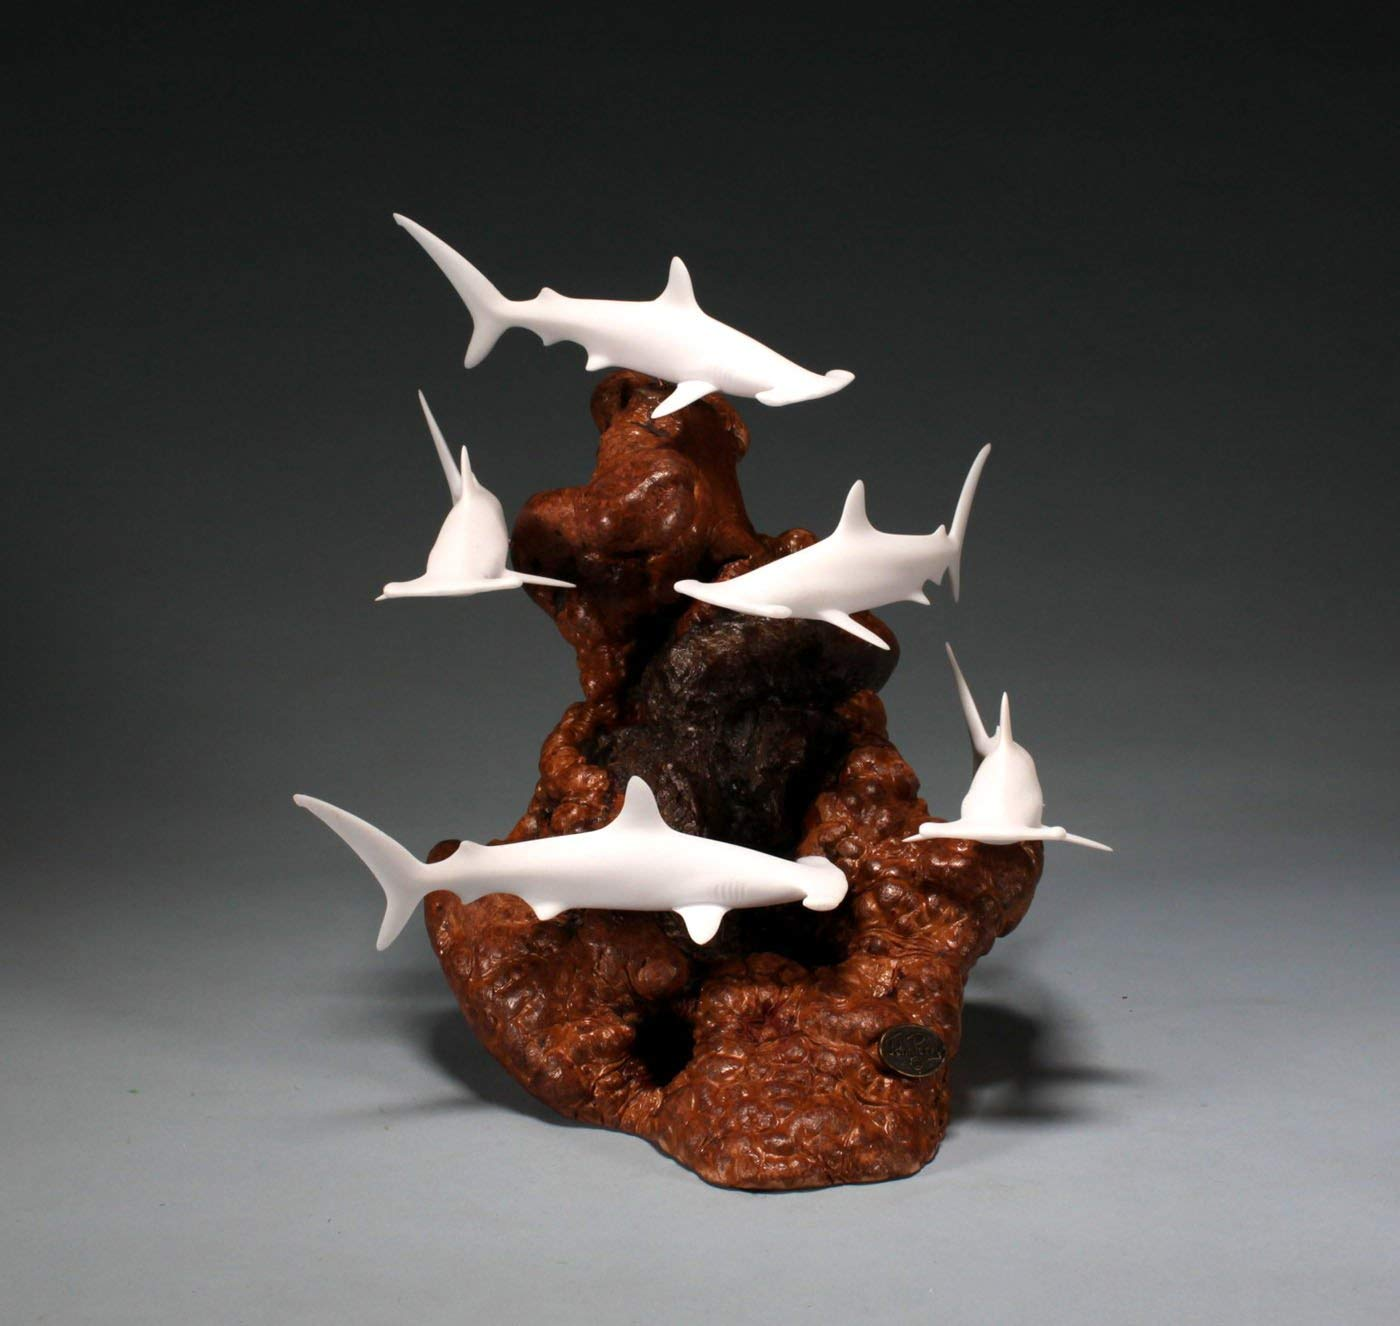 HAMMERHEAD SHARK SCHOOL Sculpture by JOHN PERRY Pellucida 12in tall